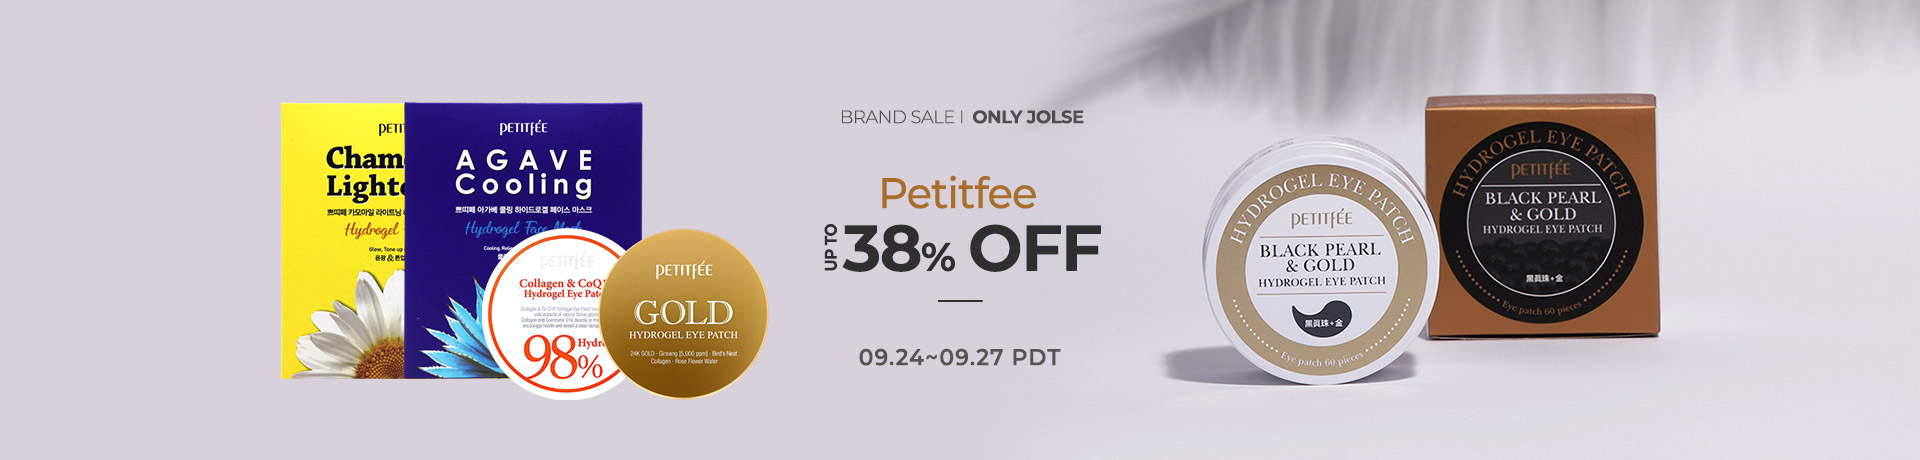 Petitfee Up to 38% OFF